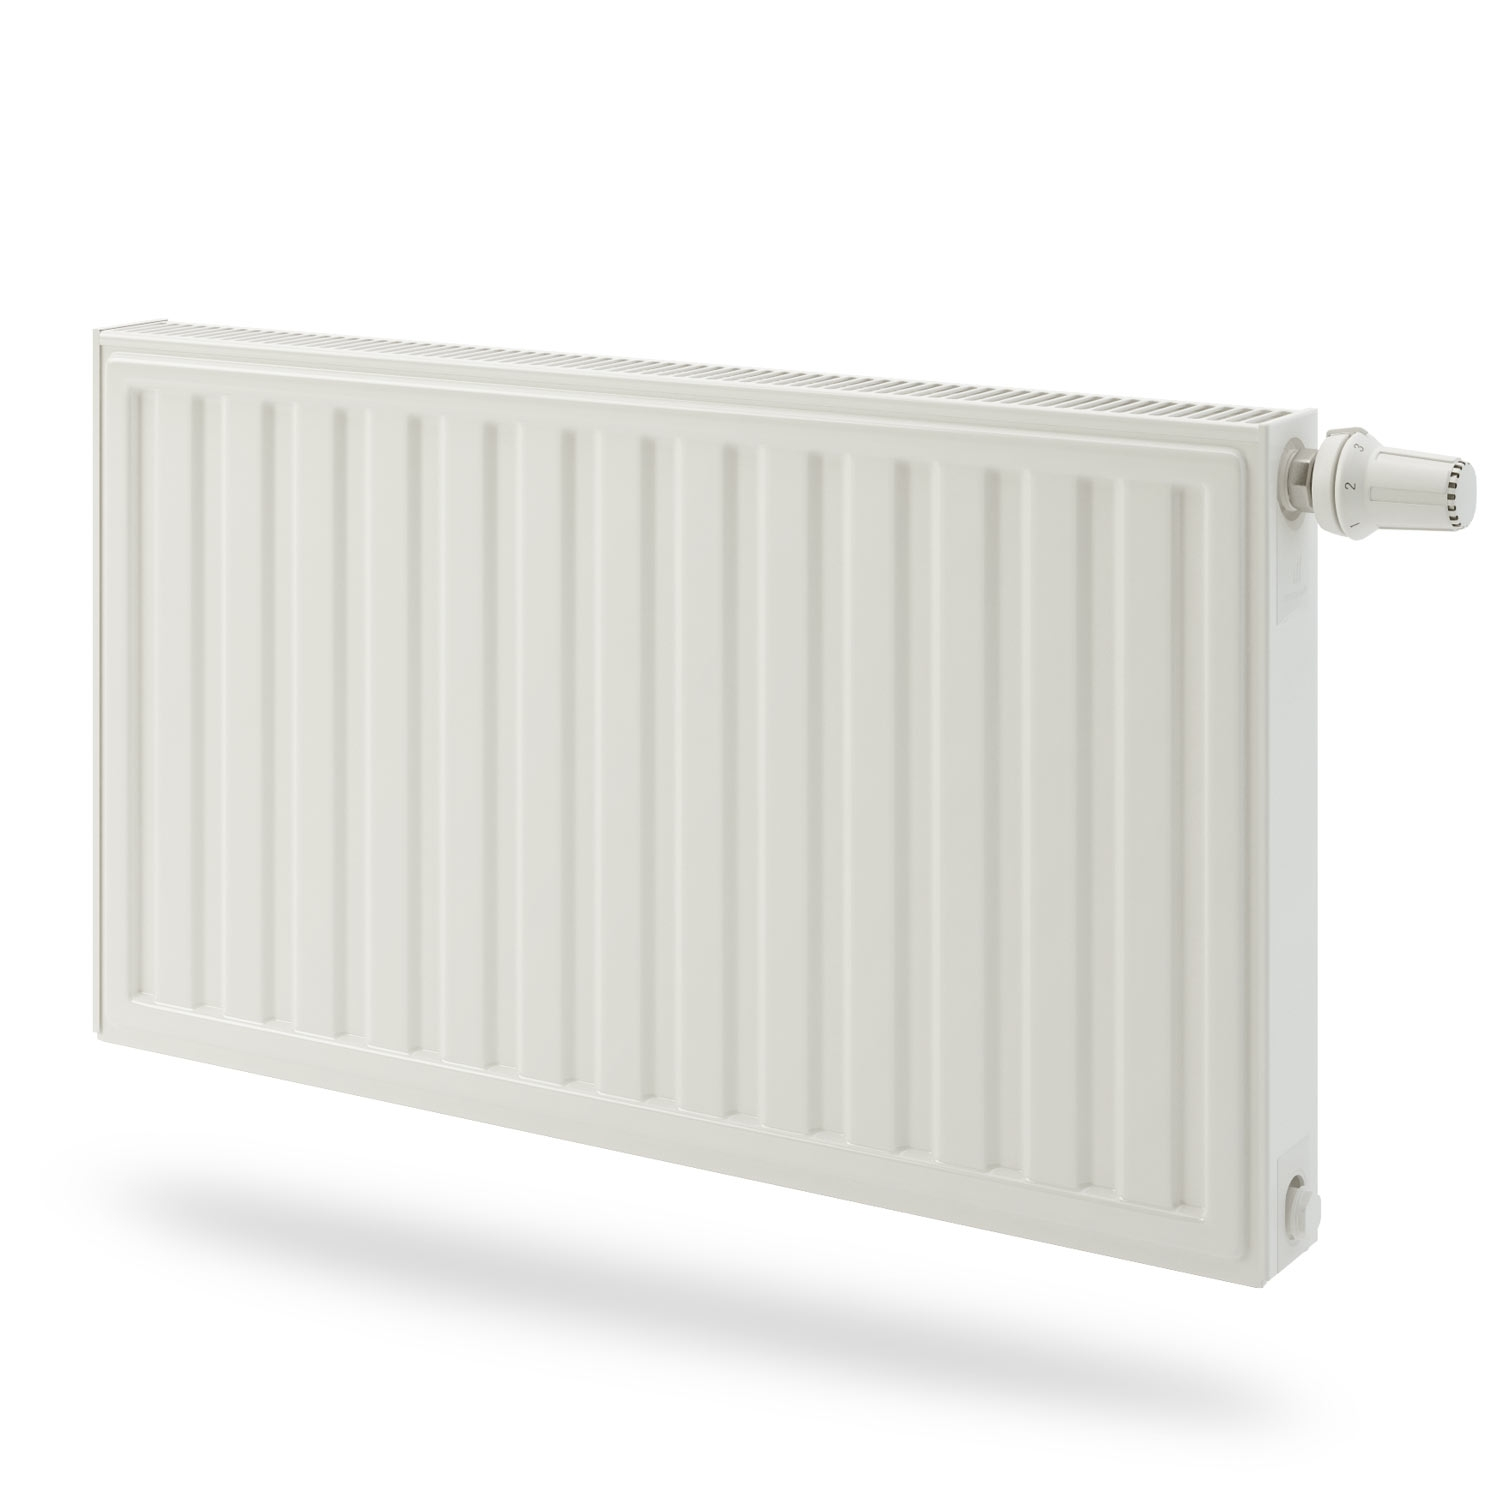 Radson E.Flow Integra paneelradiator  600x1650x106mm (H x L x D) - type 22